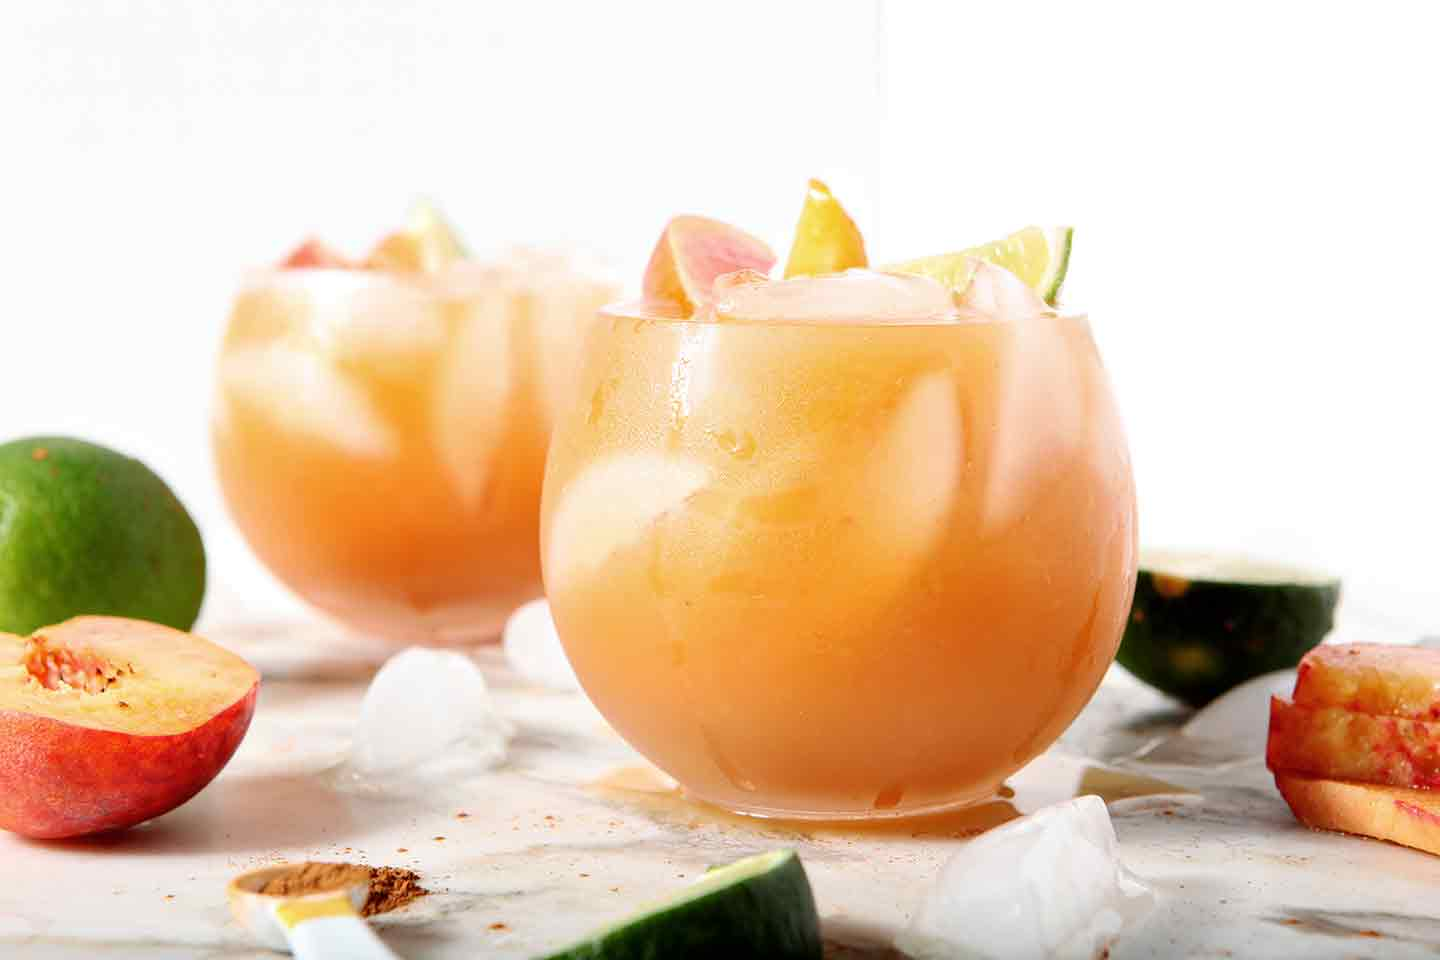 Two Peach Moscow Mules sit on a marble background surrounded by ice, lime wedges and peach slices